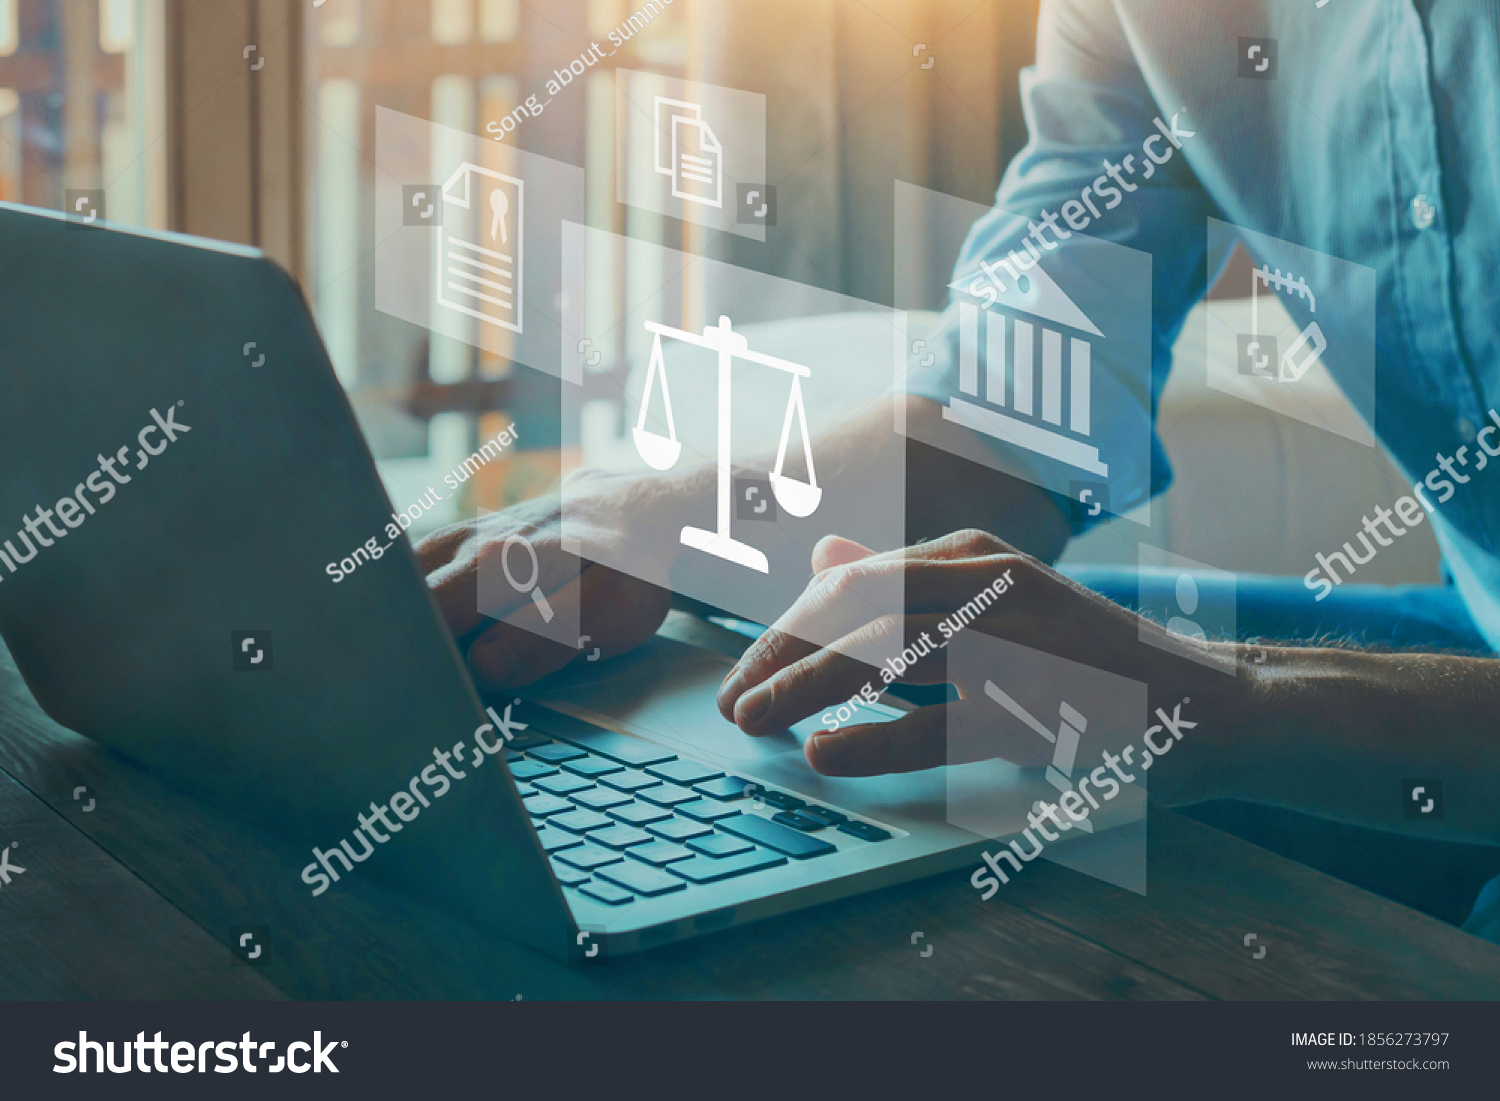 Legal advice online, labor law concept, layer or notary working for business company. #1856273797